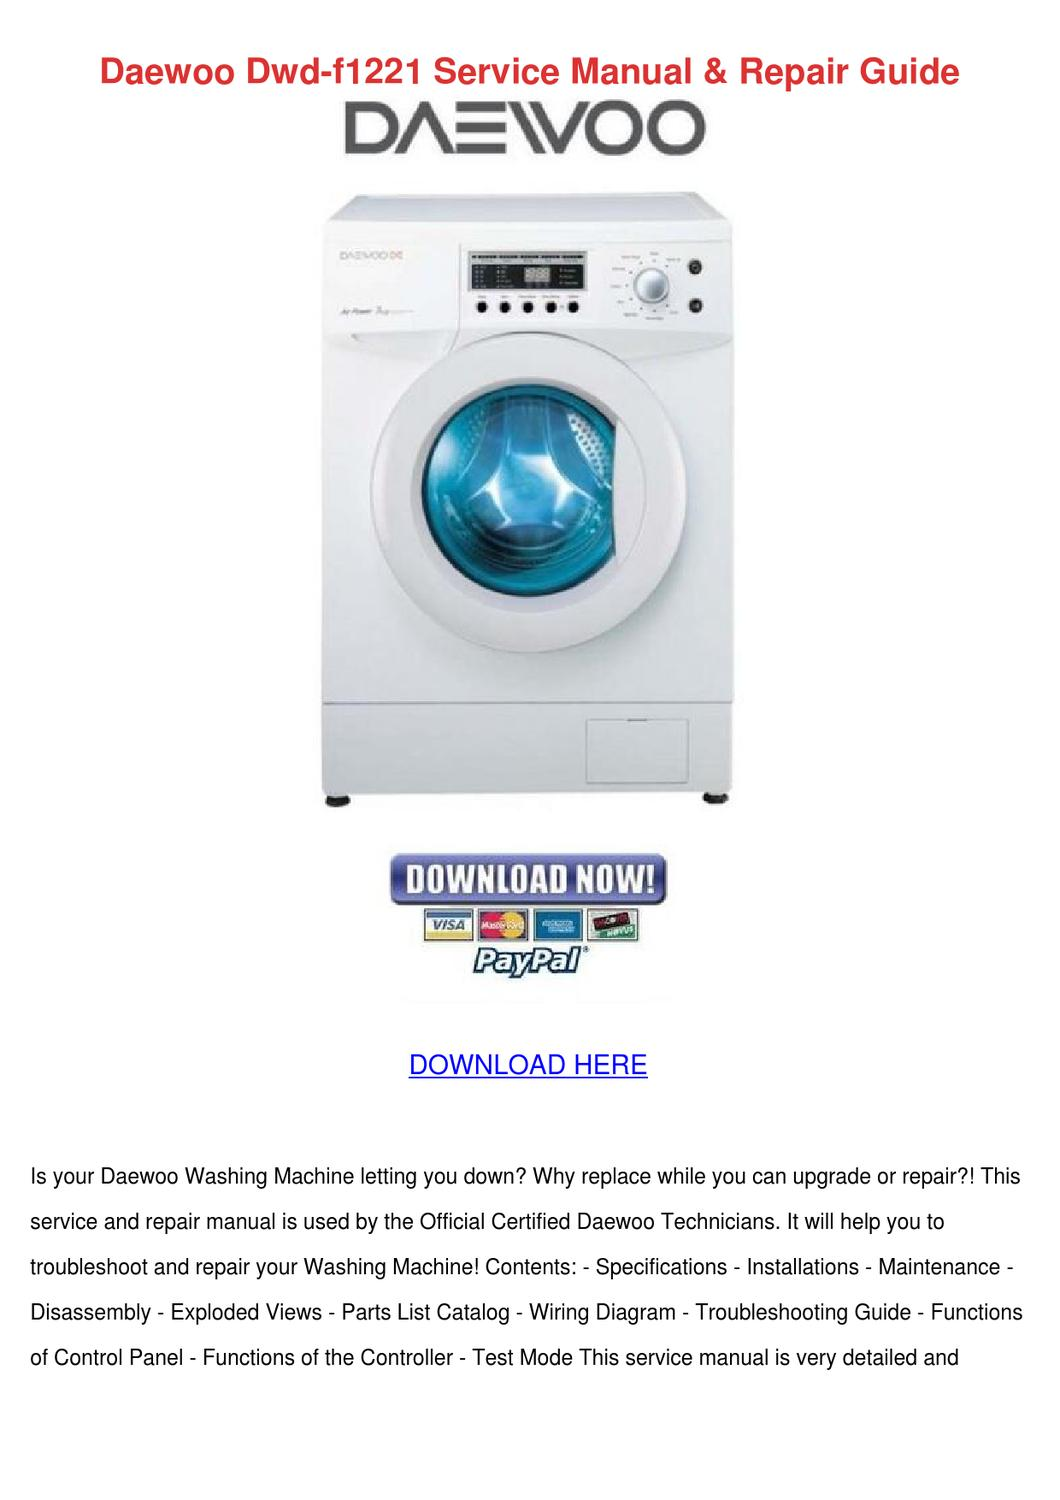 Daewoo Washing Machine Wiring Diagram Just Another Motor View Dryer Home Rh 14 20 1 Medi Med Ruhr De Kenmore Washer